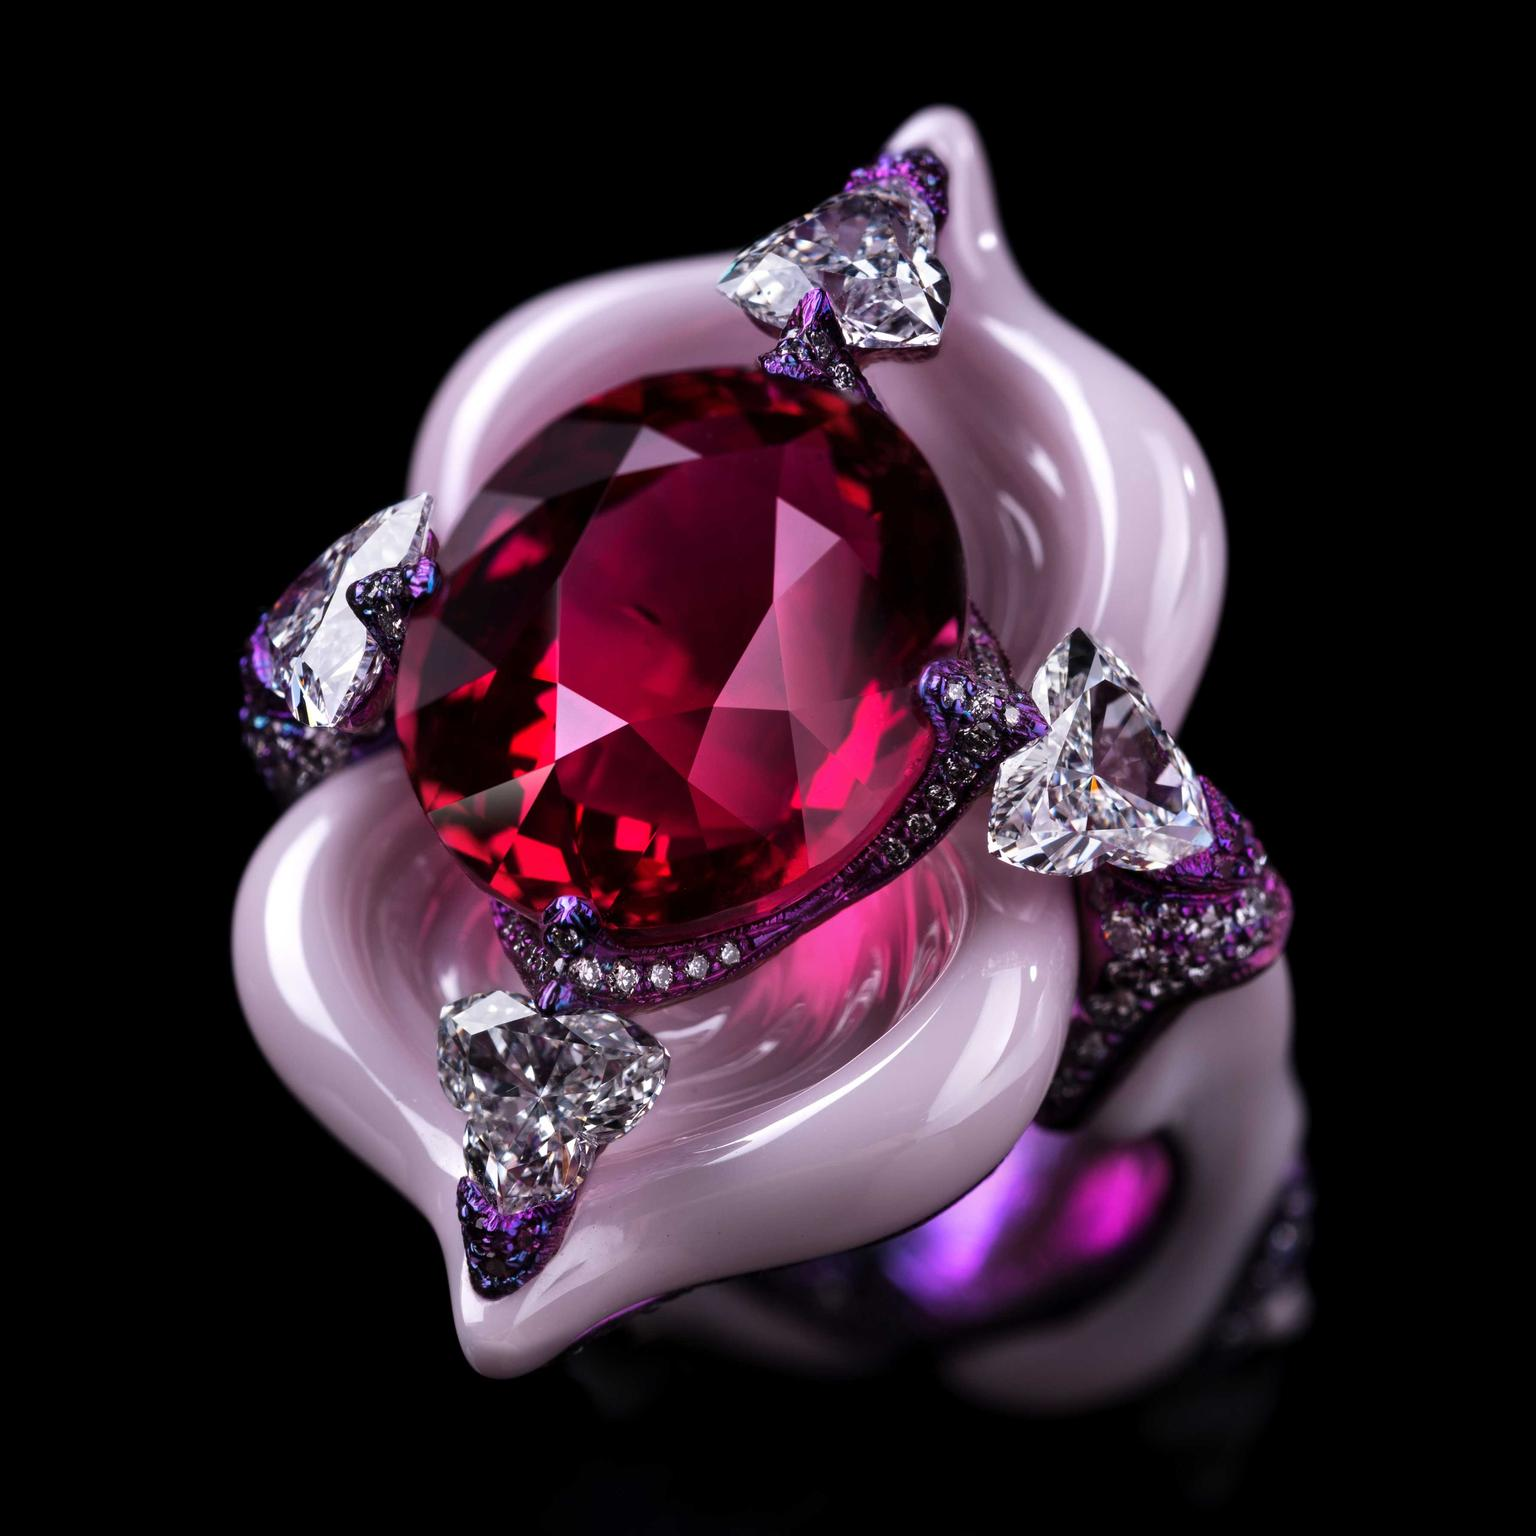 Wallace Chan Starlight Ballet ring with spinel diamonds pink sapphire in porcelain and titanium